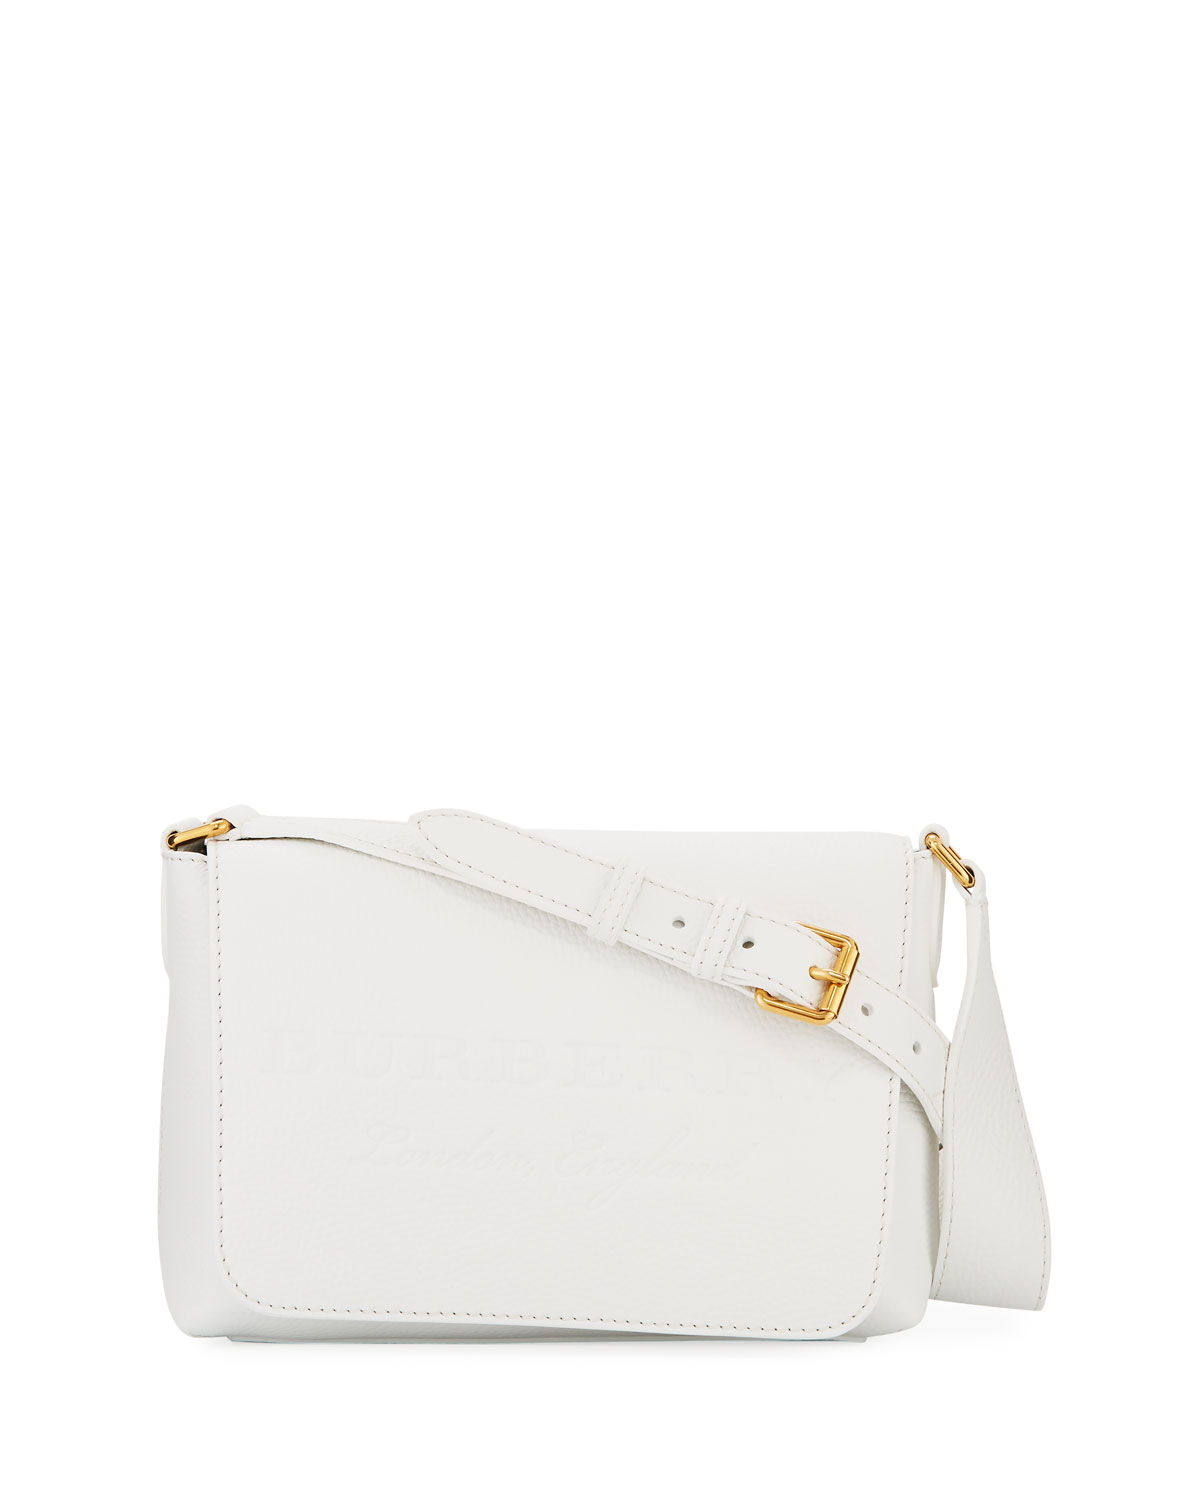 reputation first top-rated real super quality Burleigh Small Soft Leather Crossbody Bag, White